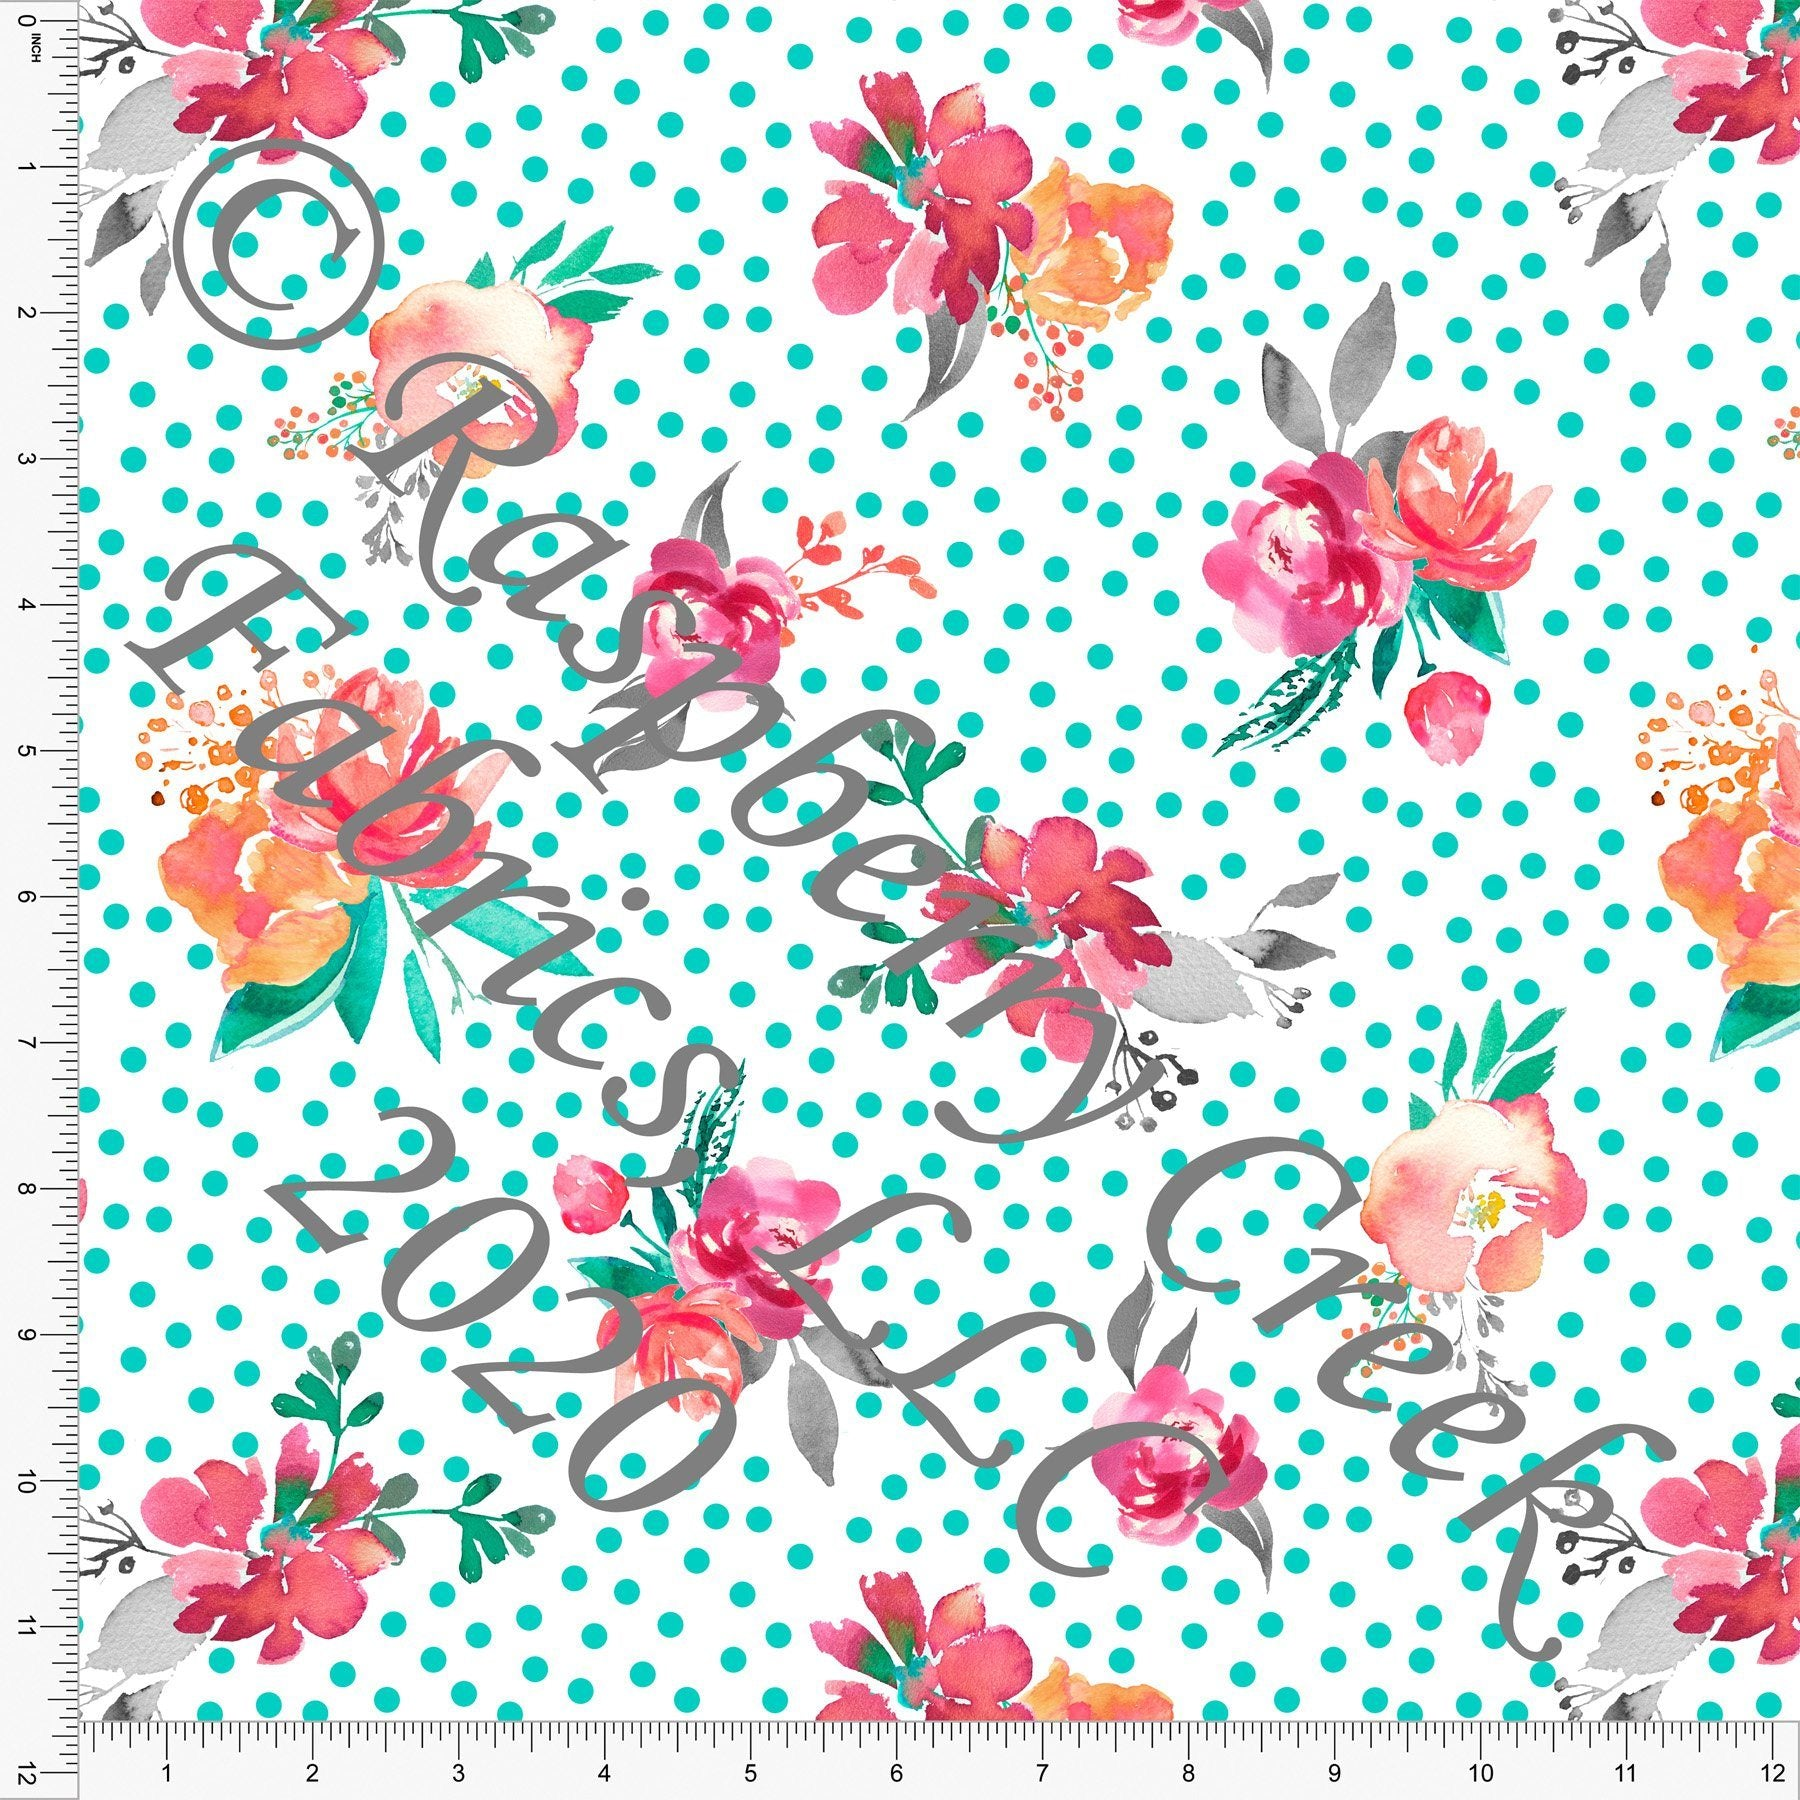 Seafoam Fuchsia Grey and Peach Polka Dot Floral, Spring Florals for Club Fabrics - Raspberry Creek Fabrics Knit Fabric